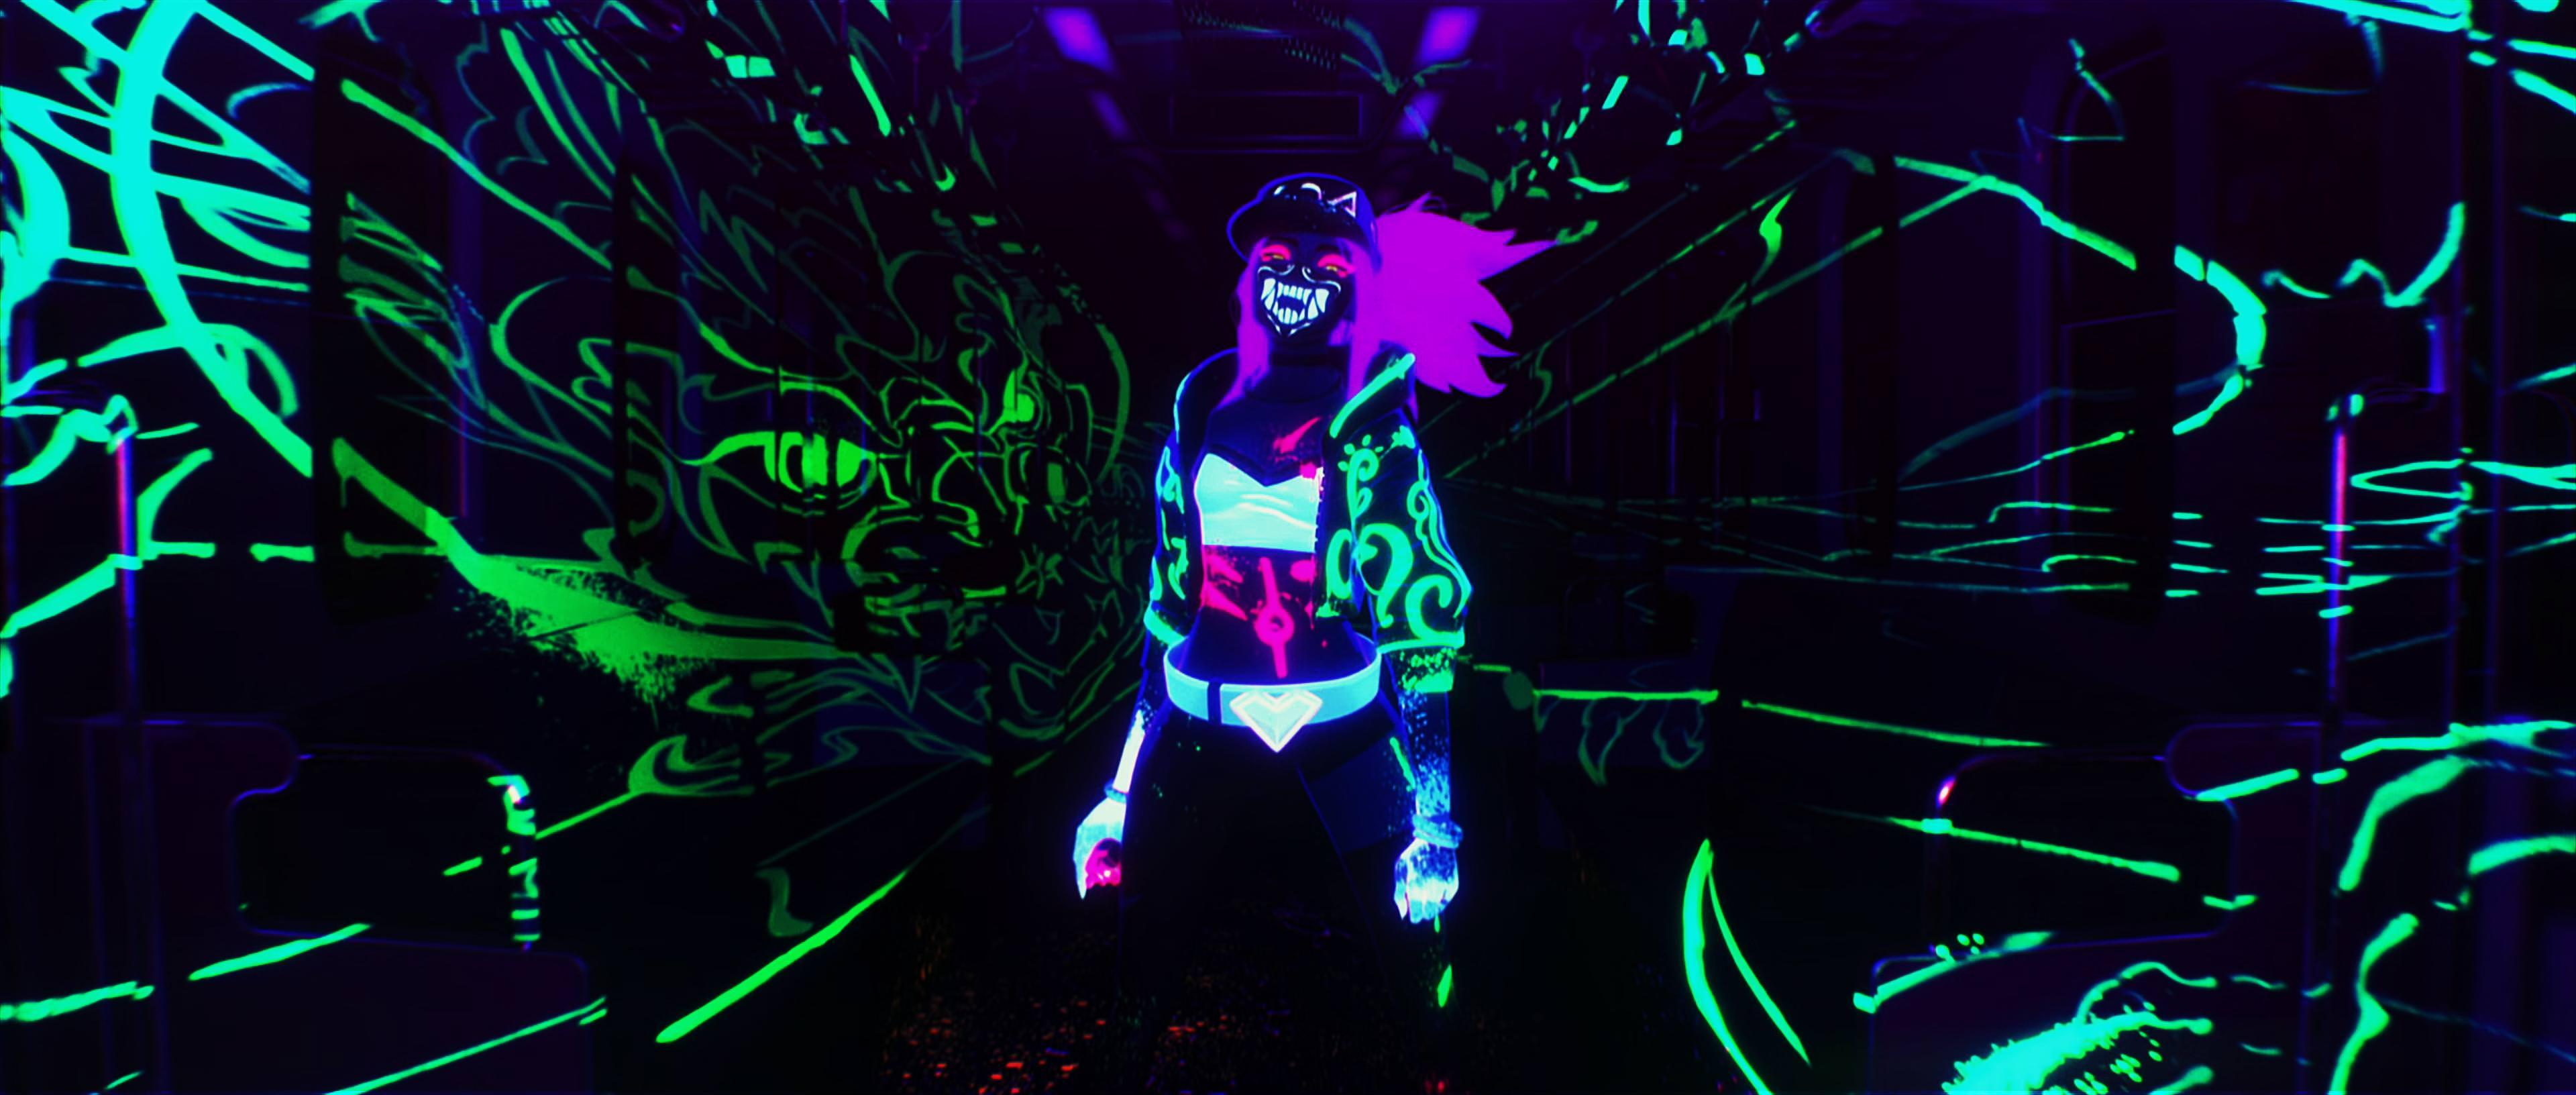 Neon Game Wallpapers Top Free Neon Game Backgrounds Wallpaperaccess